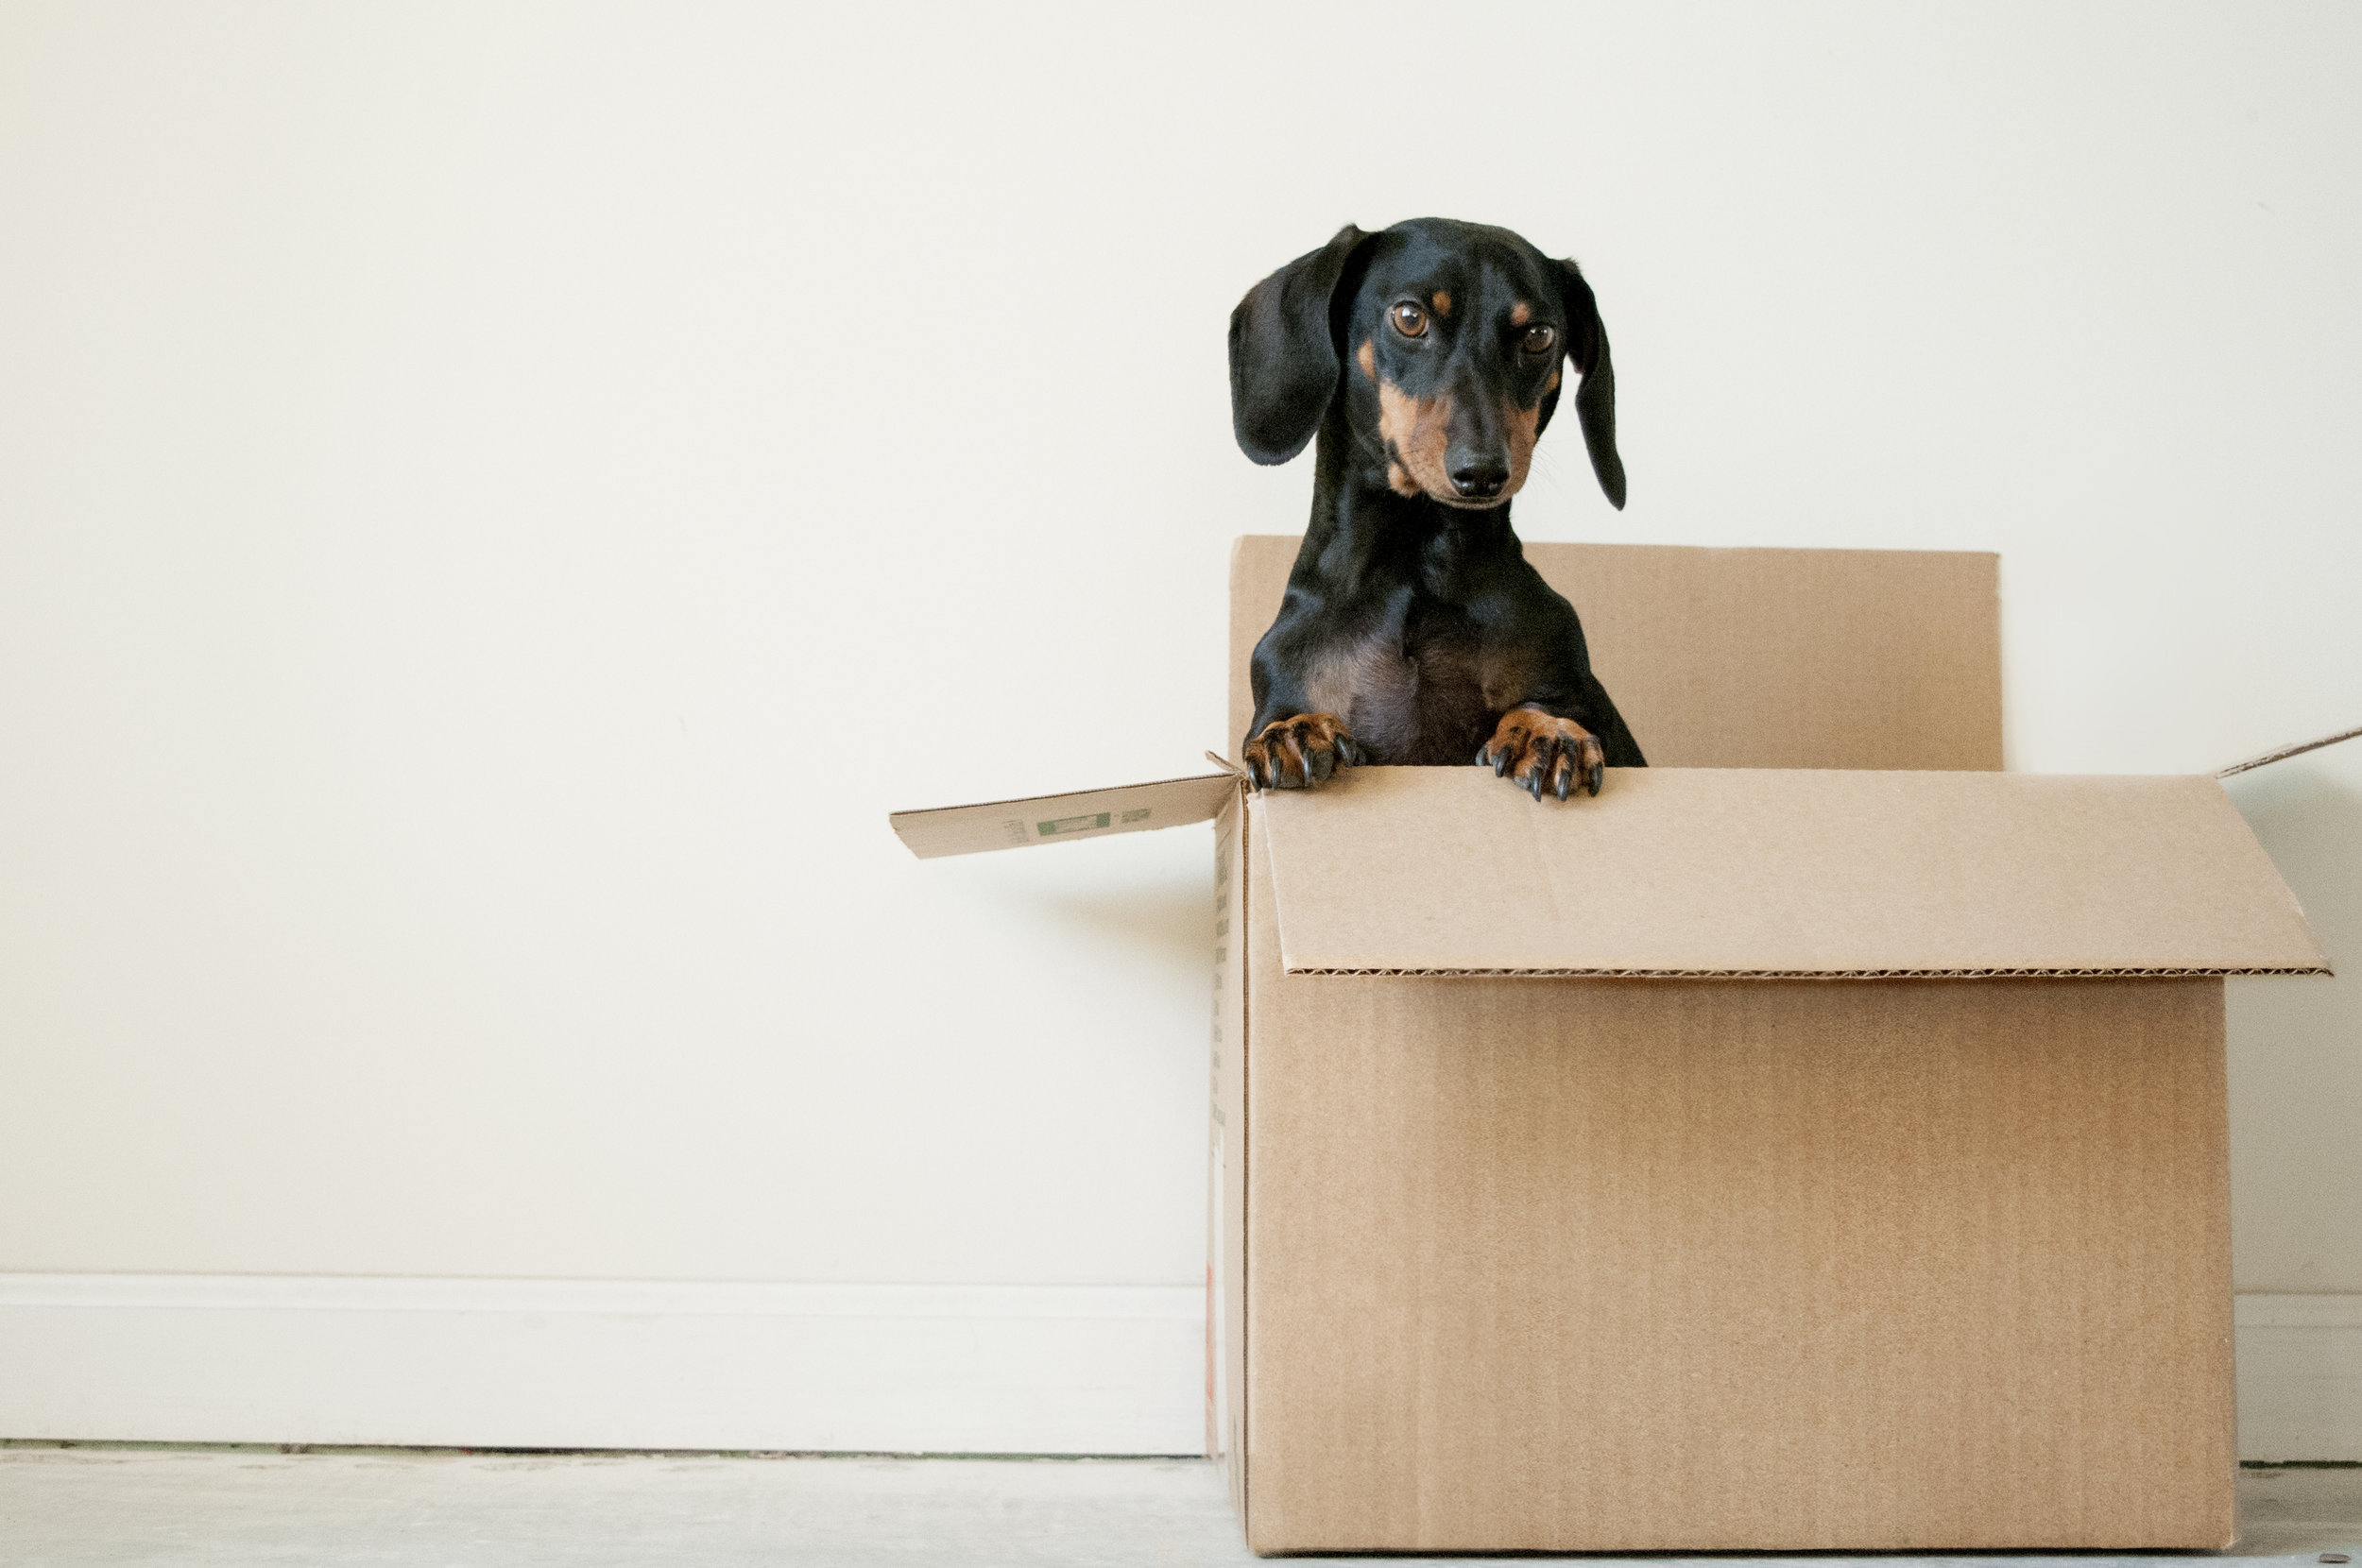 Moving damages? - Yes we can help with that!